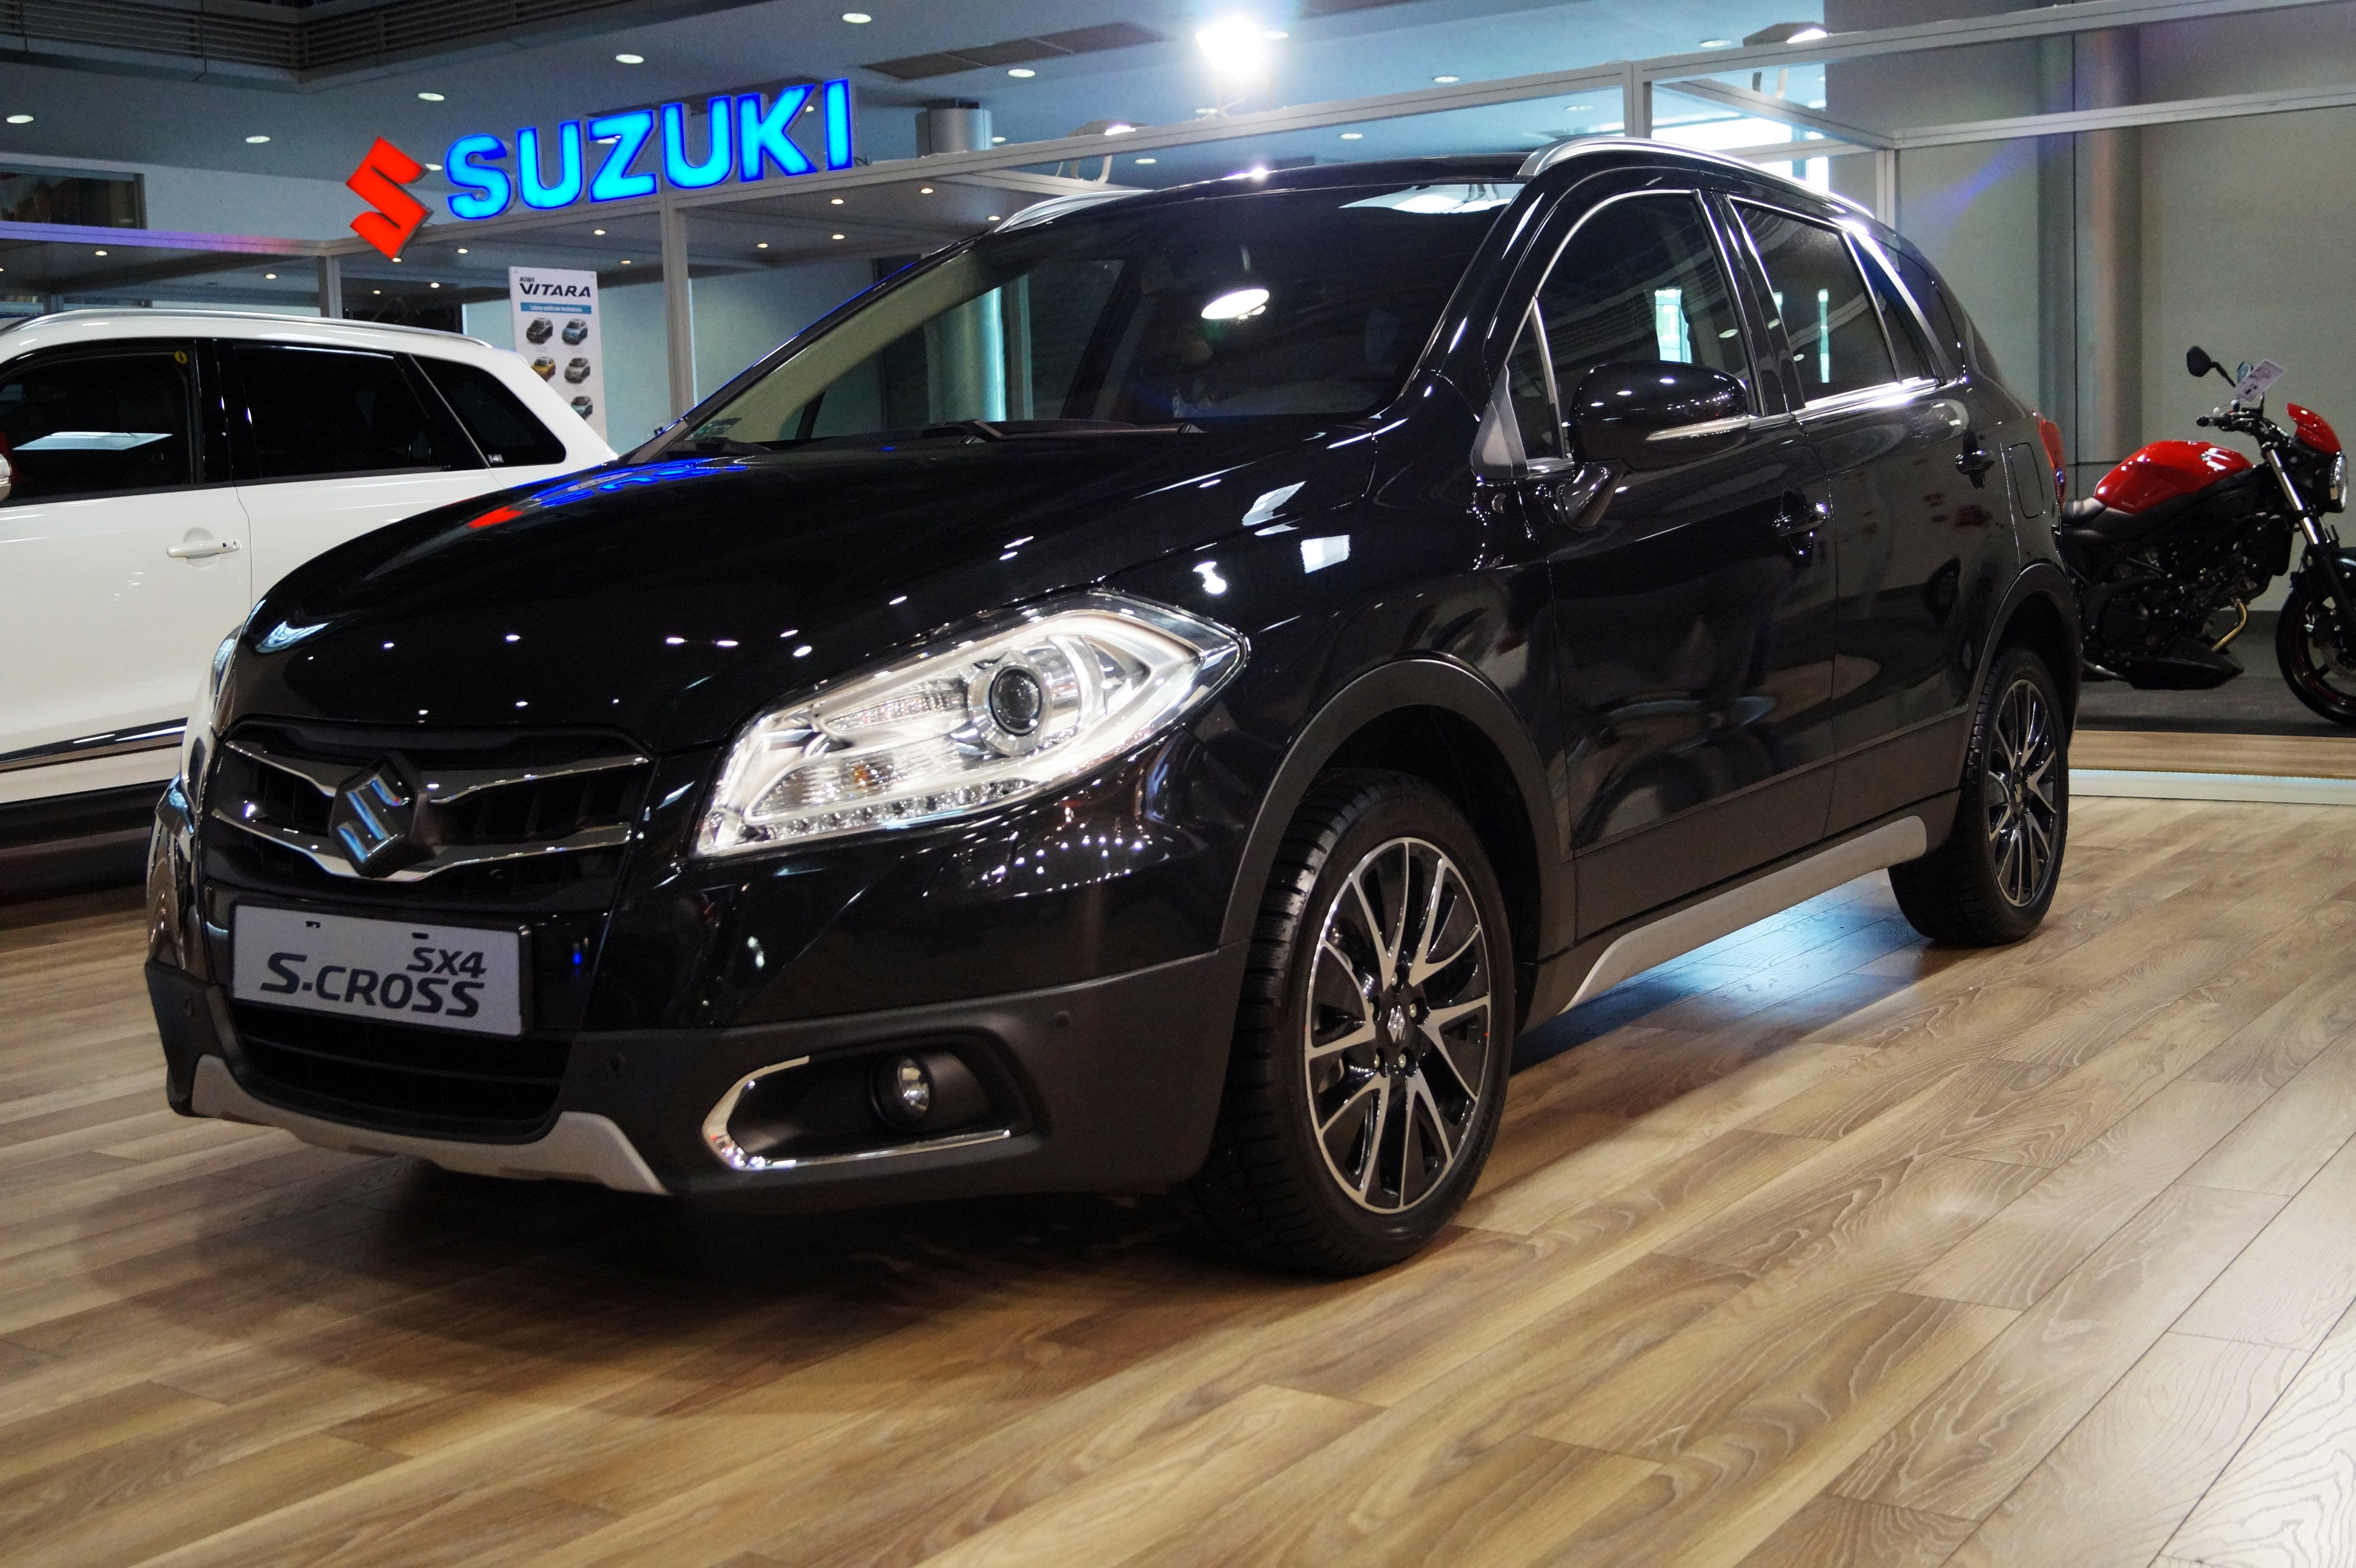 file suzuki sx4 s cross msp16 jpg wikimedia commons. Black Bedroom Furniture Sets. Home Design Ideas